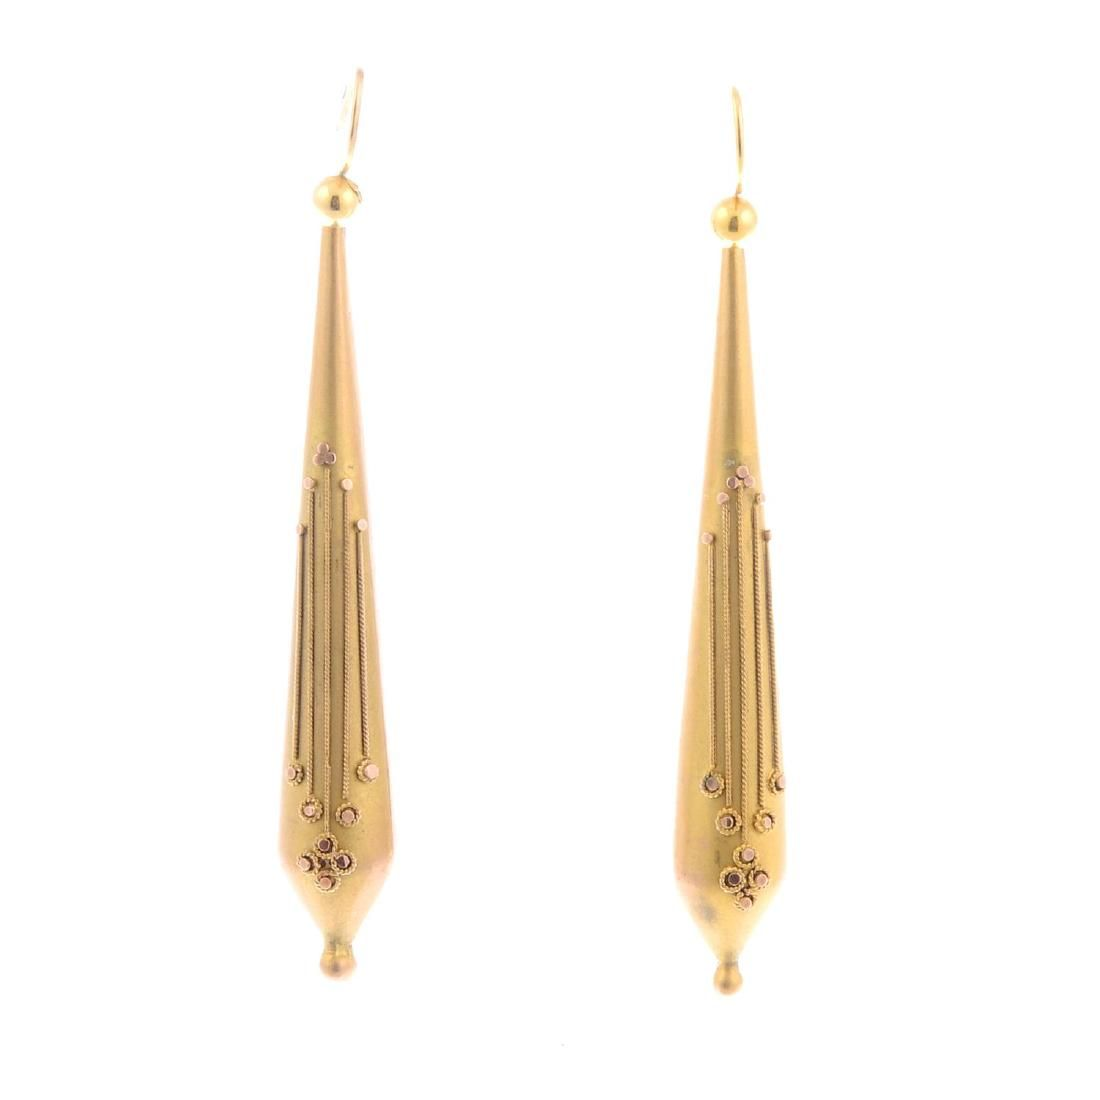 A pair of late Victorian 9ct gold earrings. Of